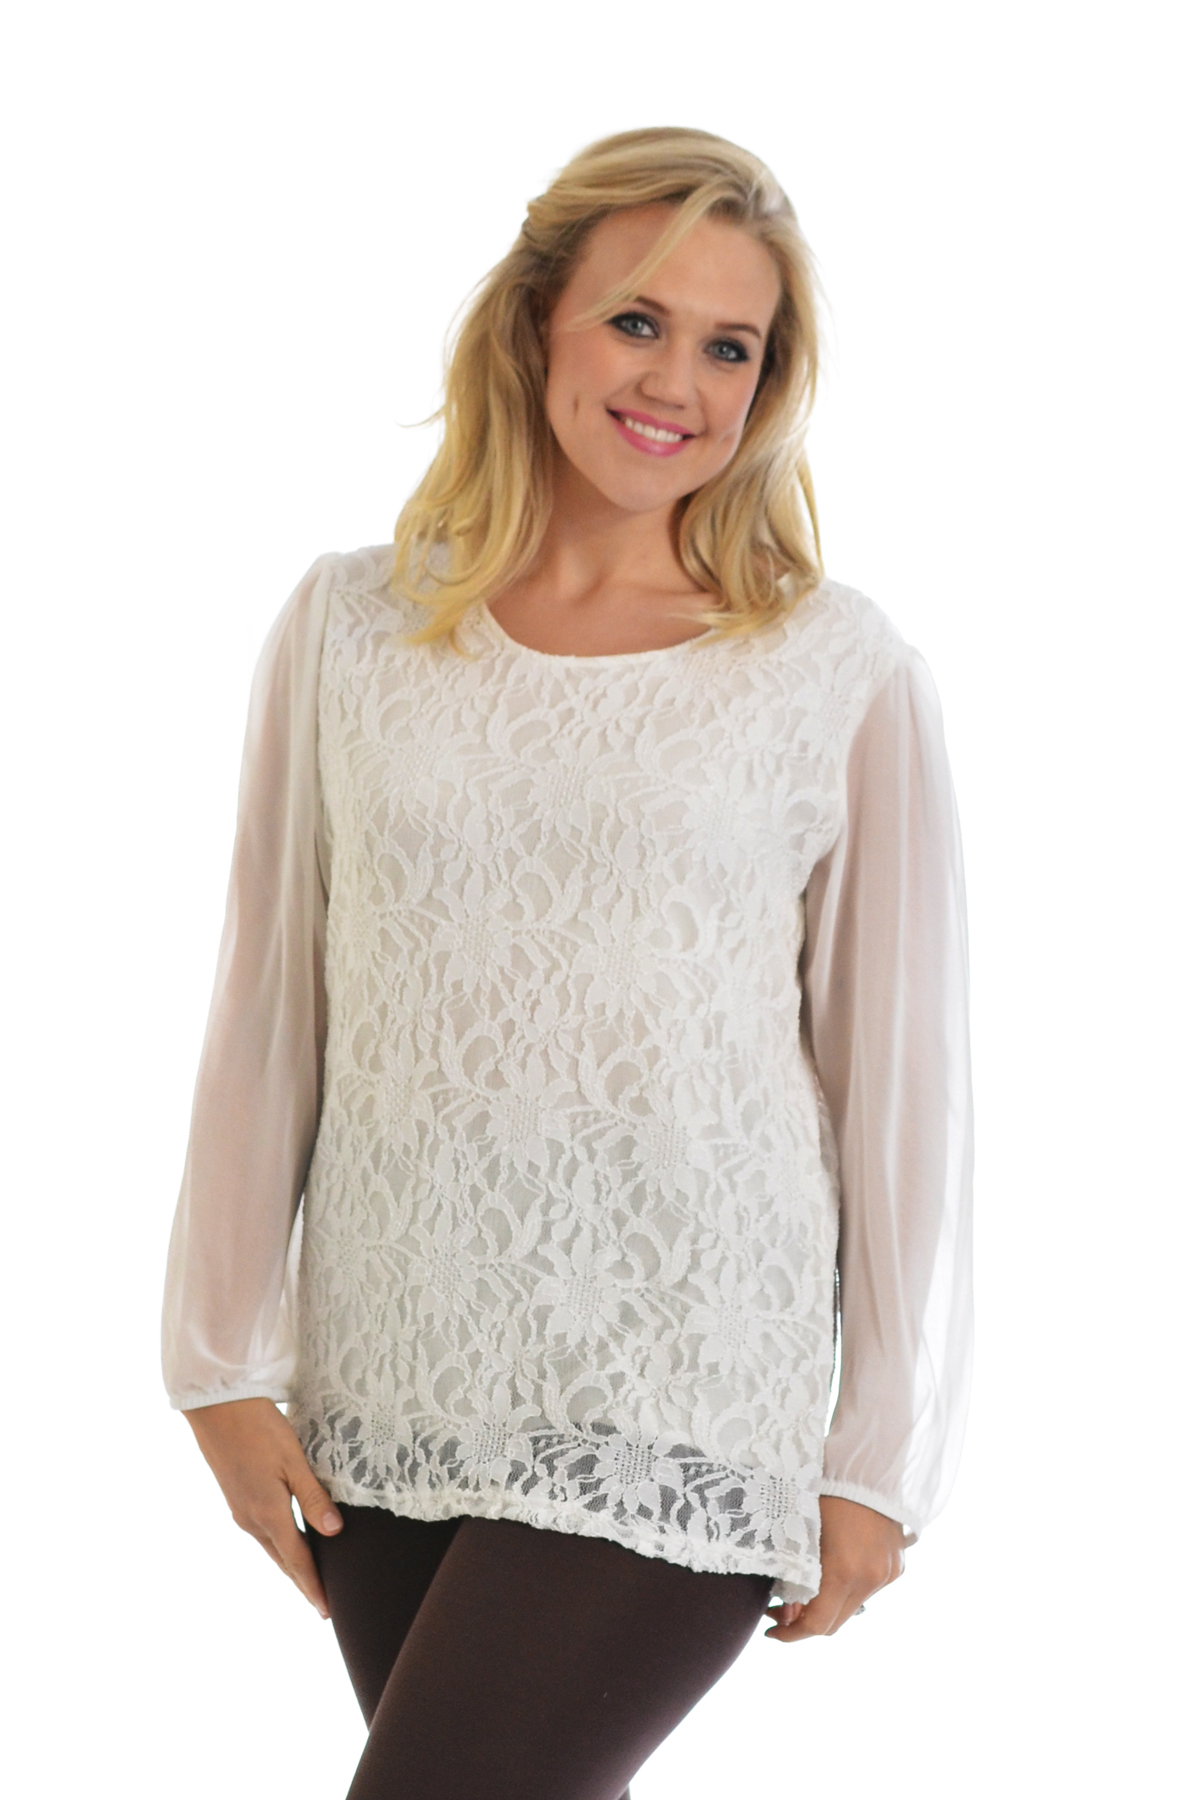 Womens New Lace Top Plus Size Ladies Chiffon Party Arm ...